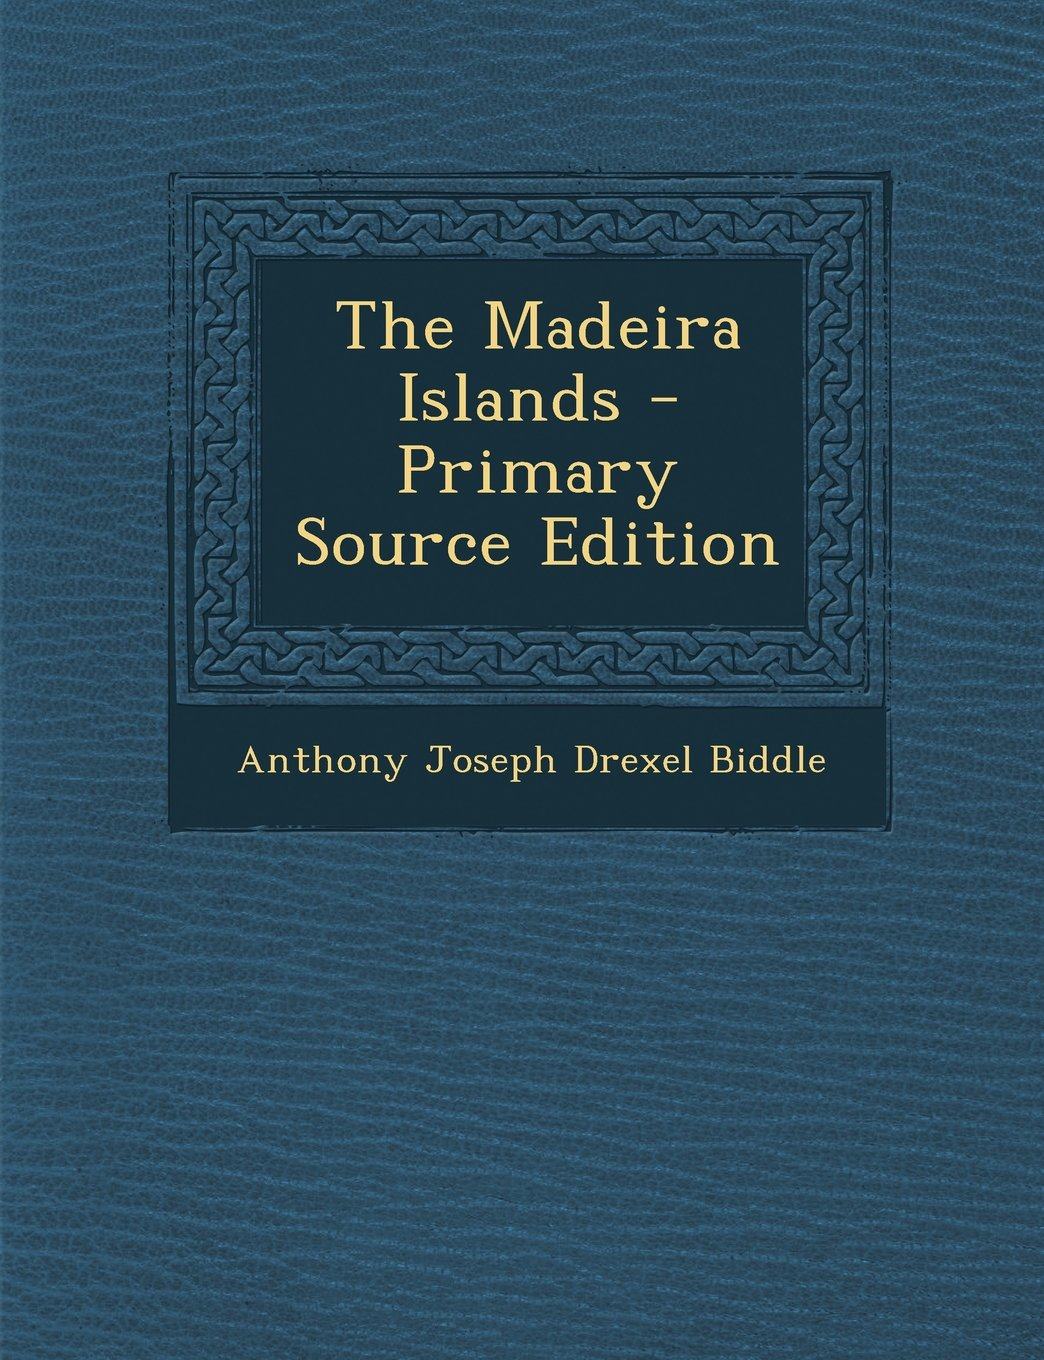 The Madeira Islands - Primary Source Edition